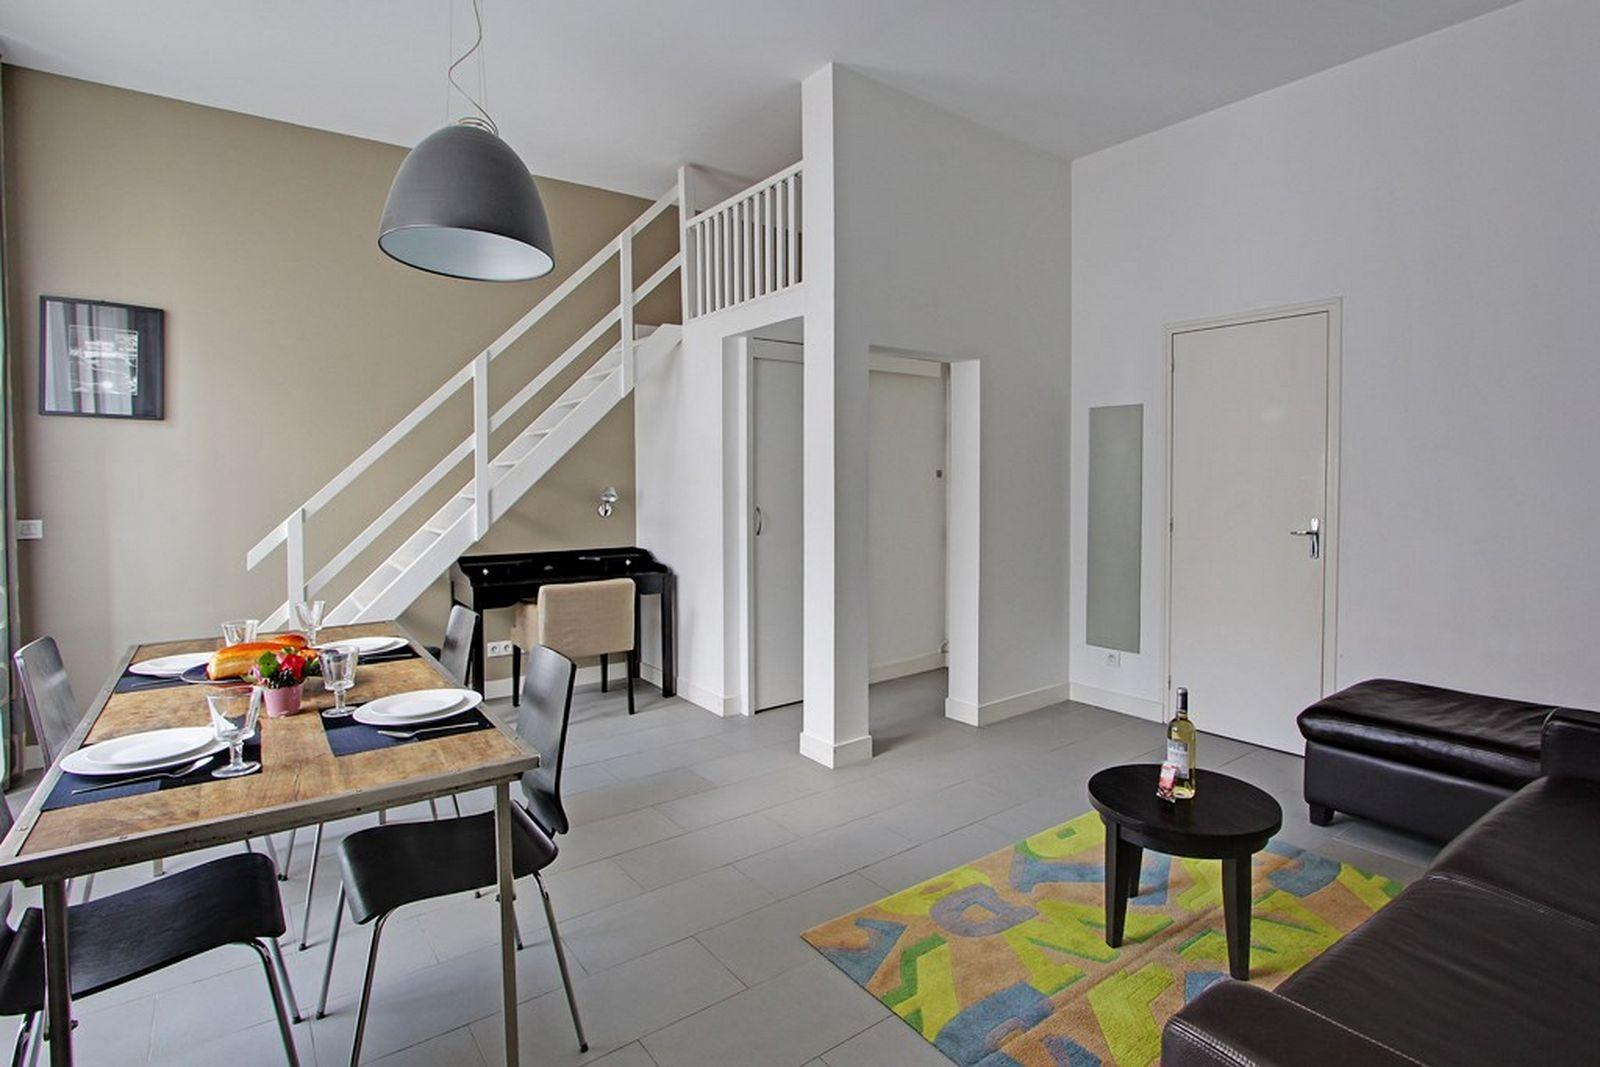 102911 - Cozy apartment for 5 people between the Grand Boulevard and Montorgueuil, metro Sentier